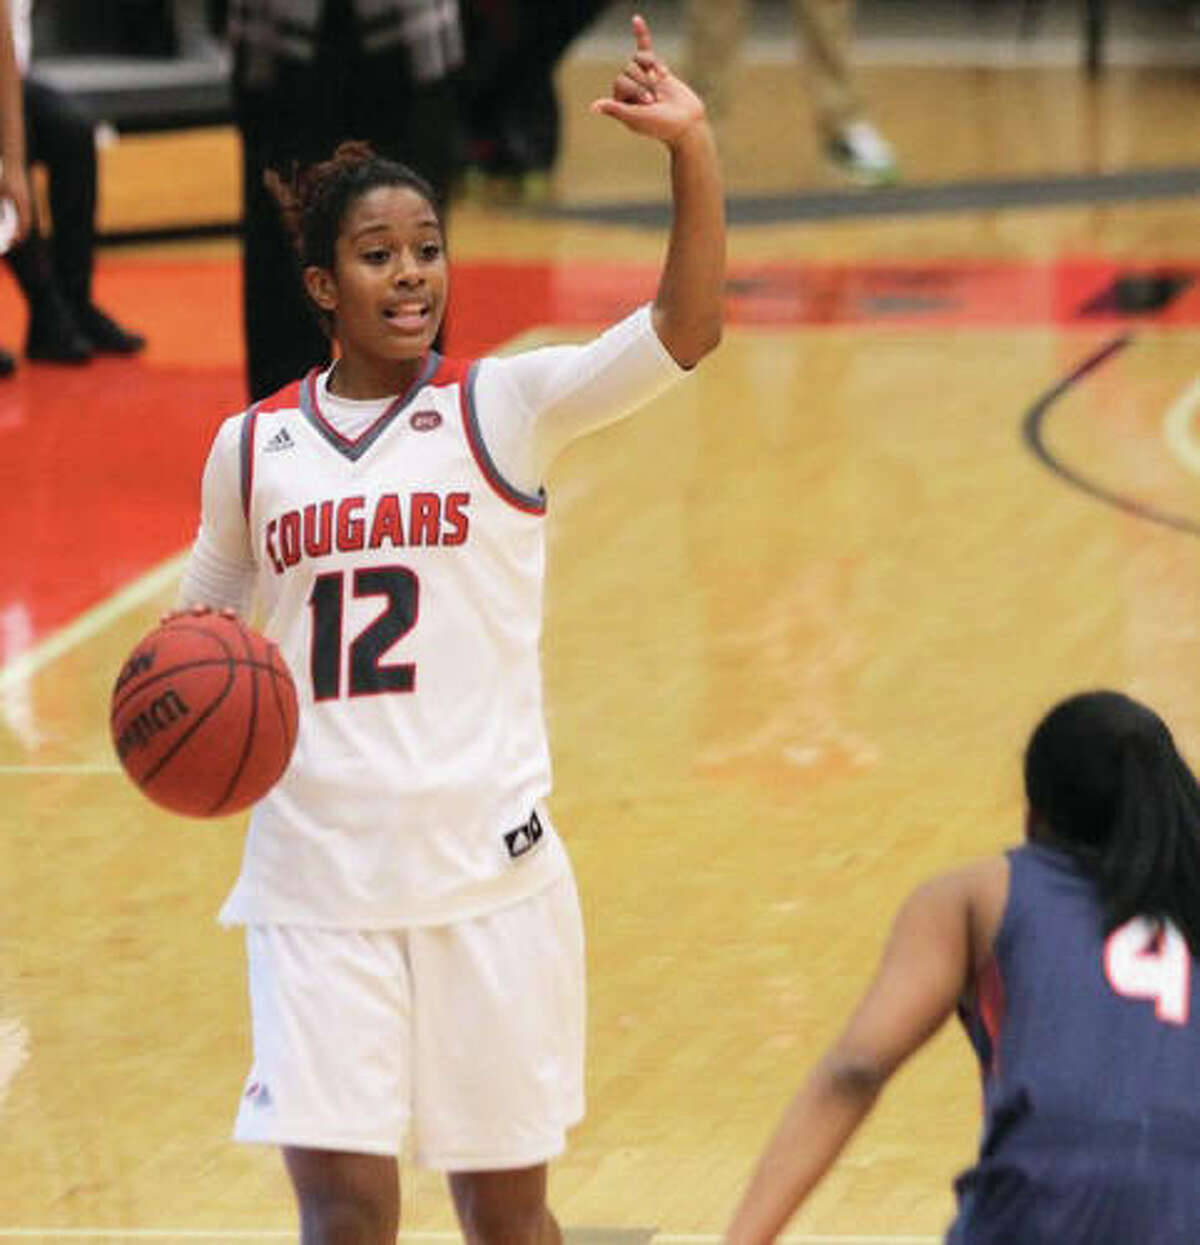 SIUE's Lauren White (12), a senior from Edwardsville, hit a 3-pointer at the buzzer to give the Cougars a OVC victory over UT Martin on Saturday night at Vadalabene Center in Edwardsville. White finished with a game-high 20 points and a career-high seven assists.